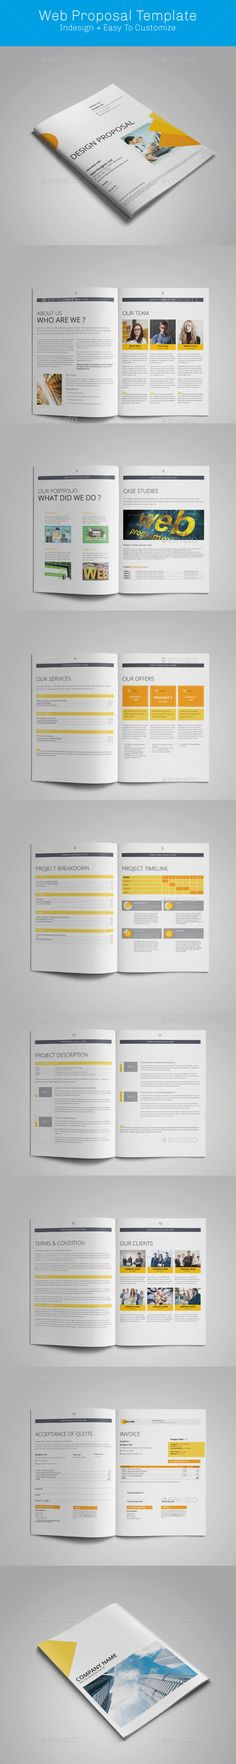 Proposal Adobe Indesign Template Indesign templates, Adobe - it proposal template